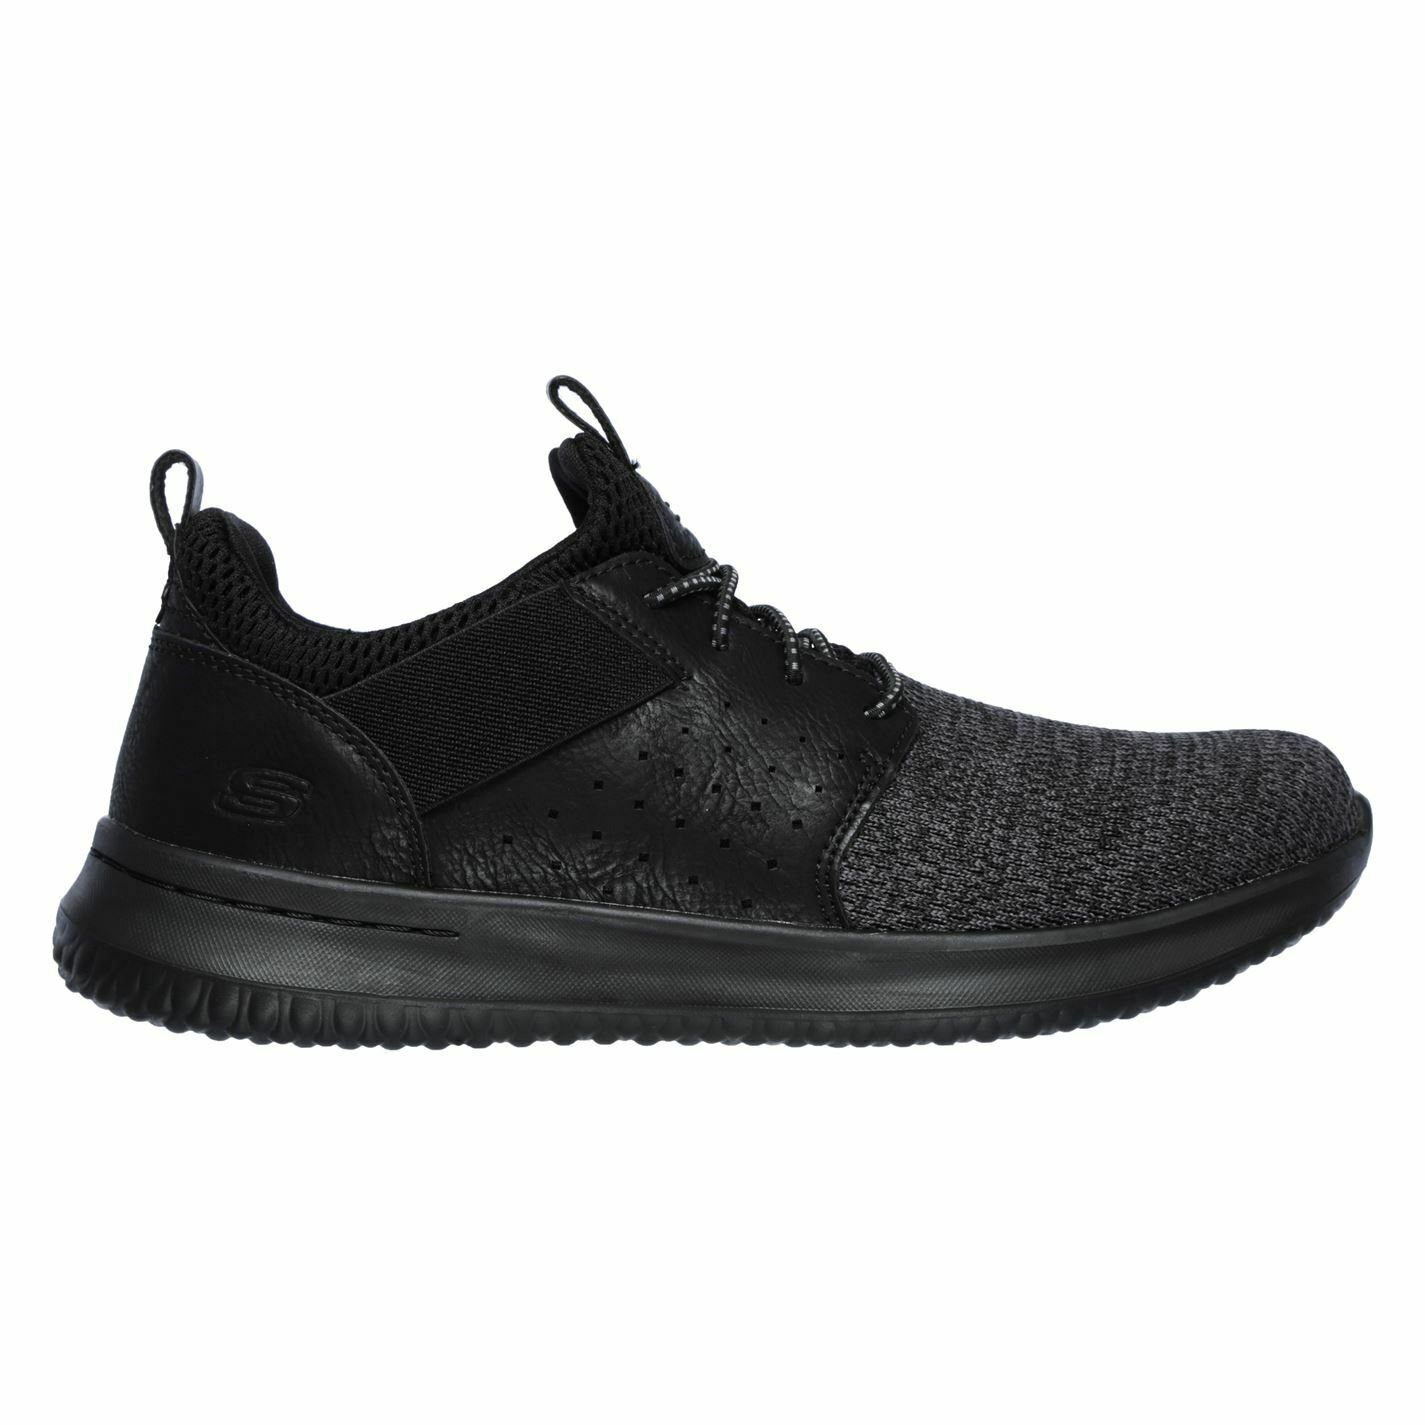 Skechers Mens Delson Camben Trainers Sneakers Sports shoes Athletic Footwear   online shopping sports